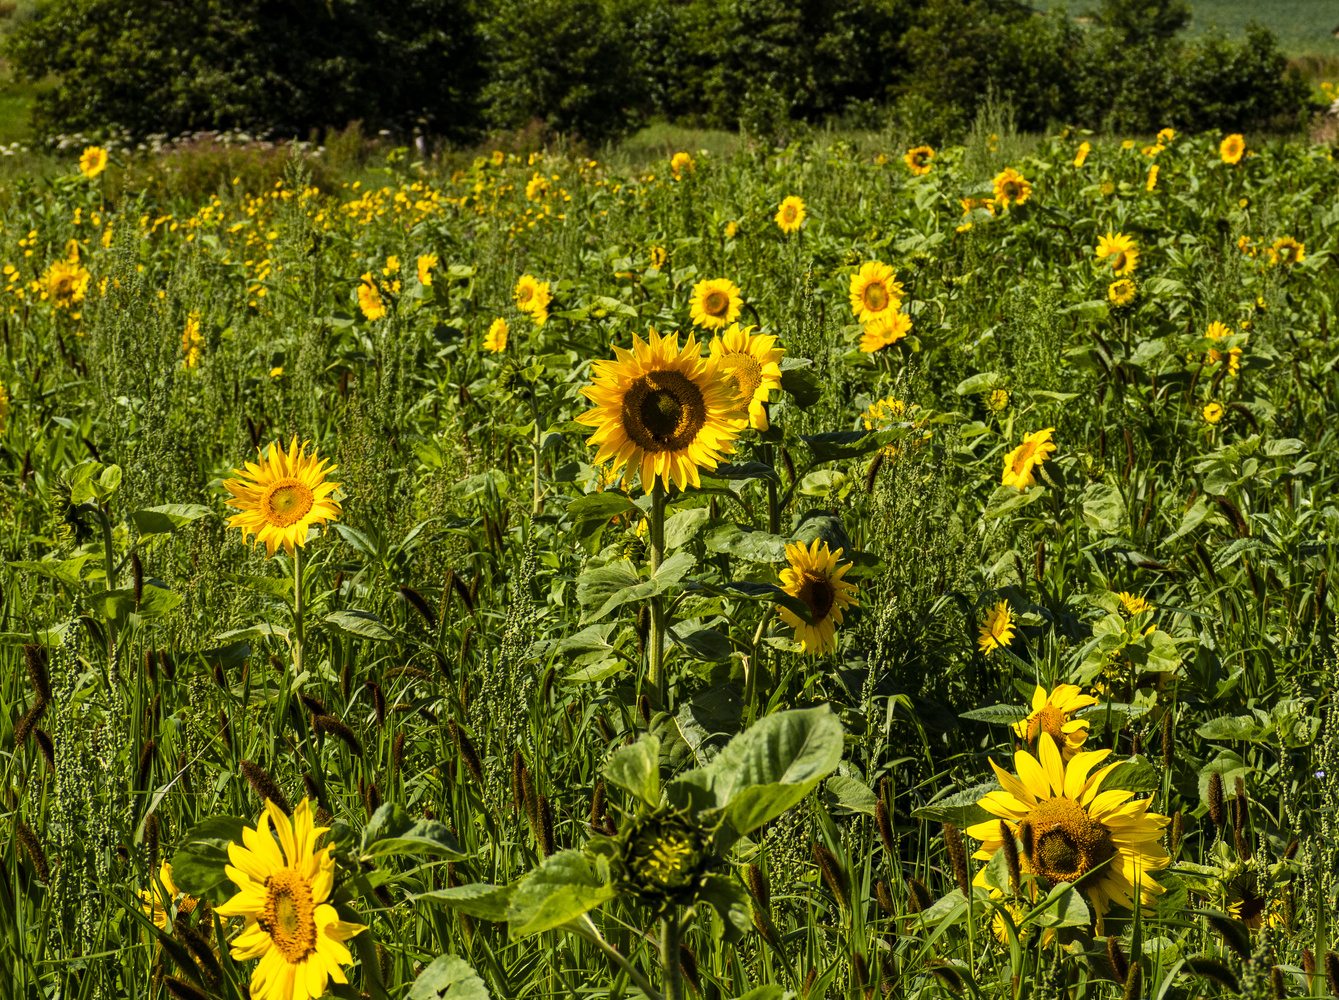 Sunflowers by Richard Gale